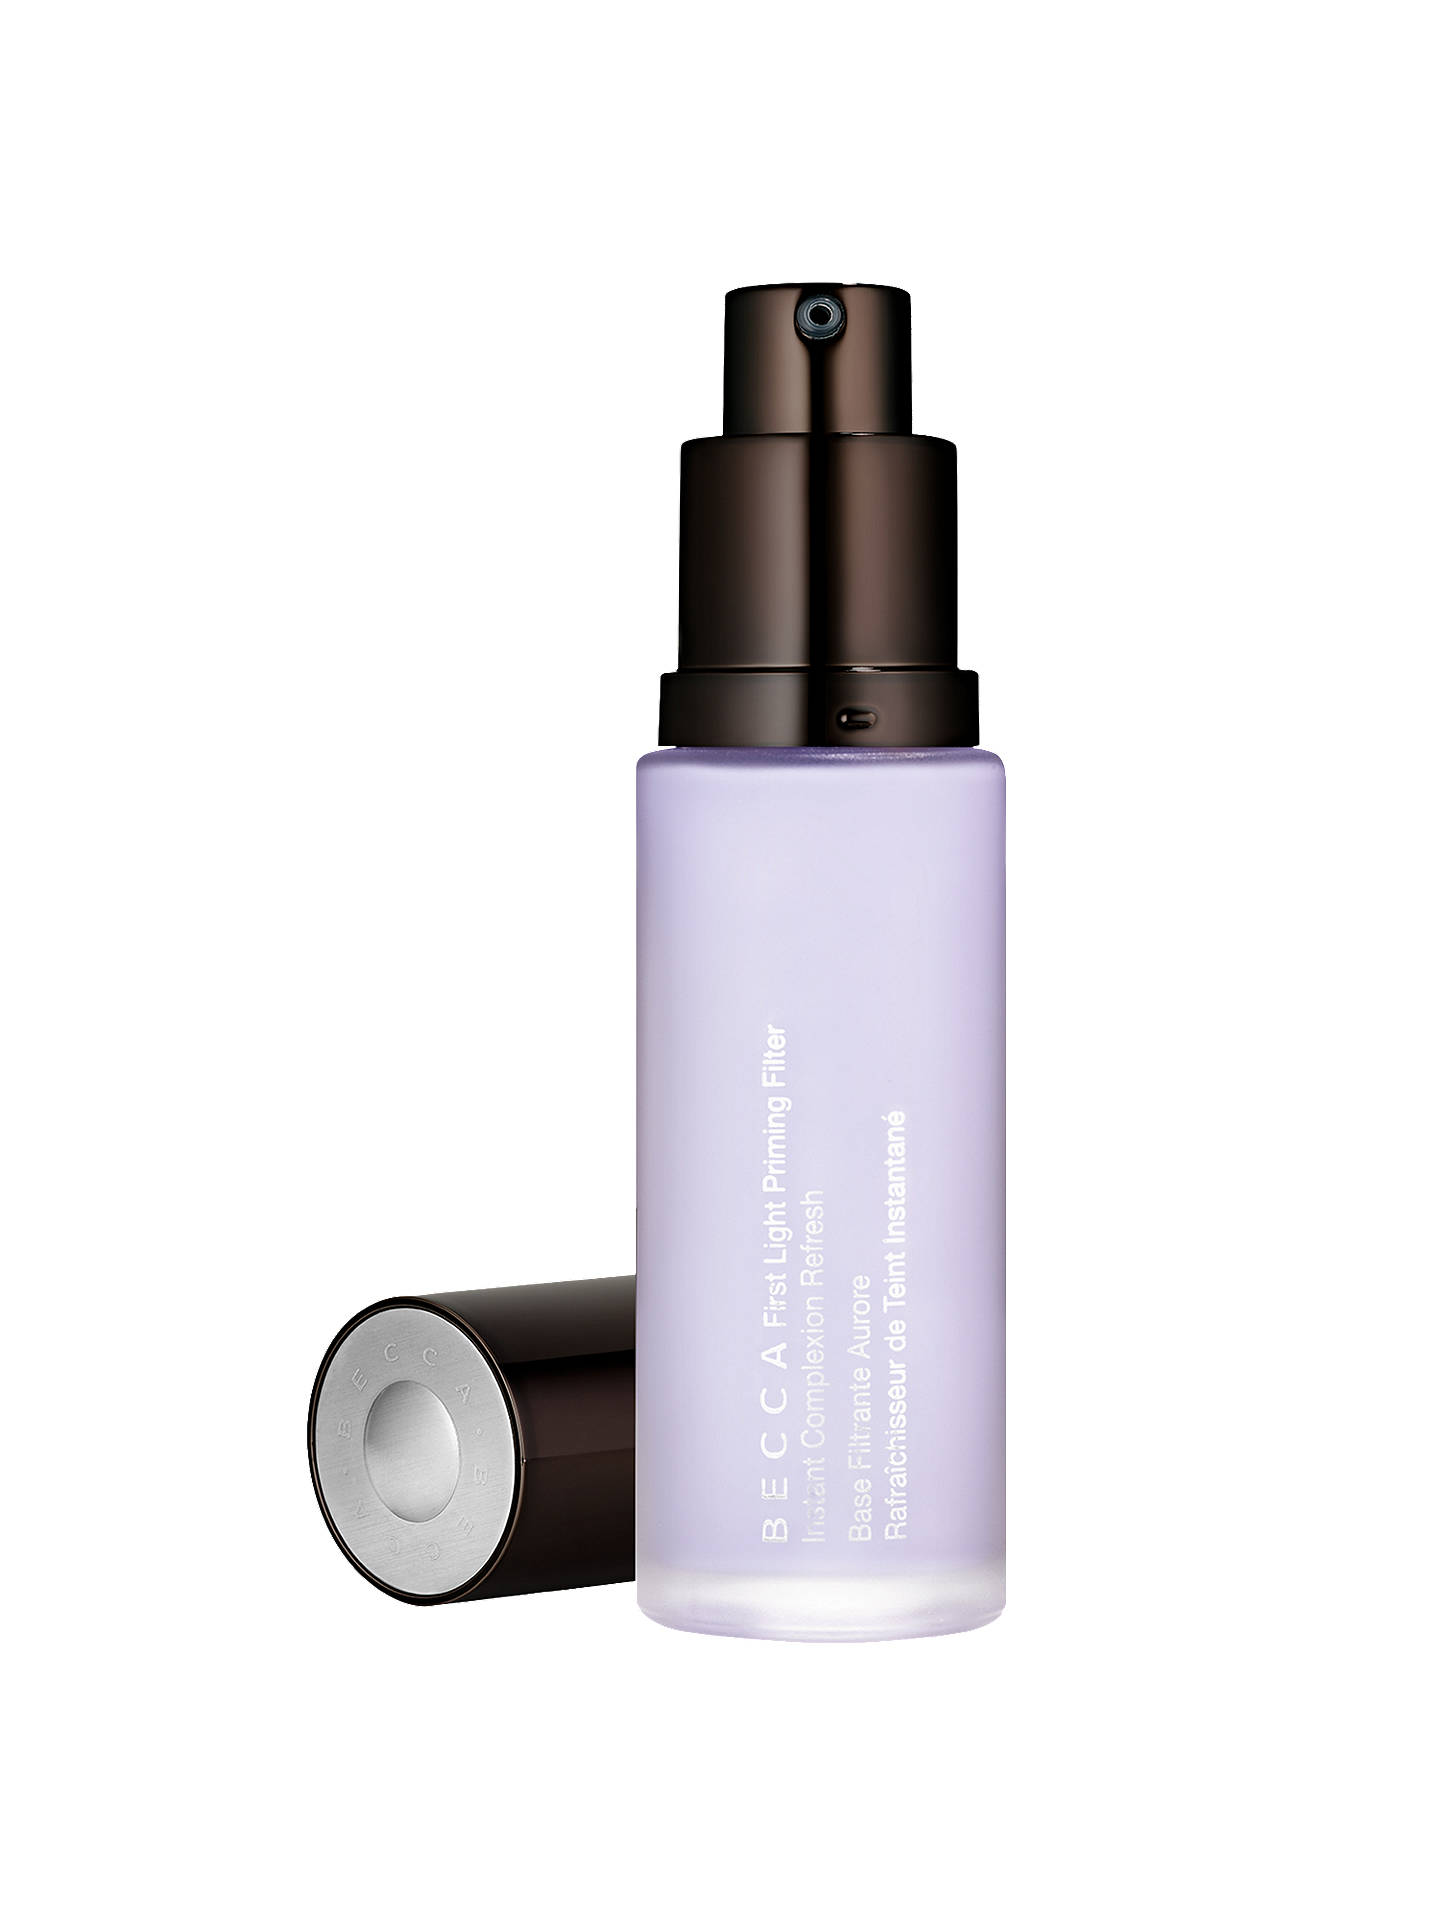 BuyBECCA First Light Priming Filter Online at johnlewis.com